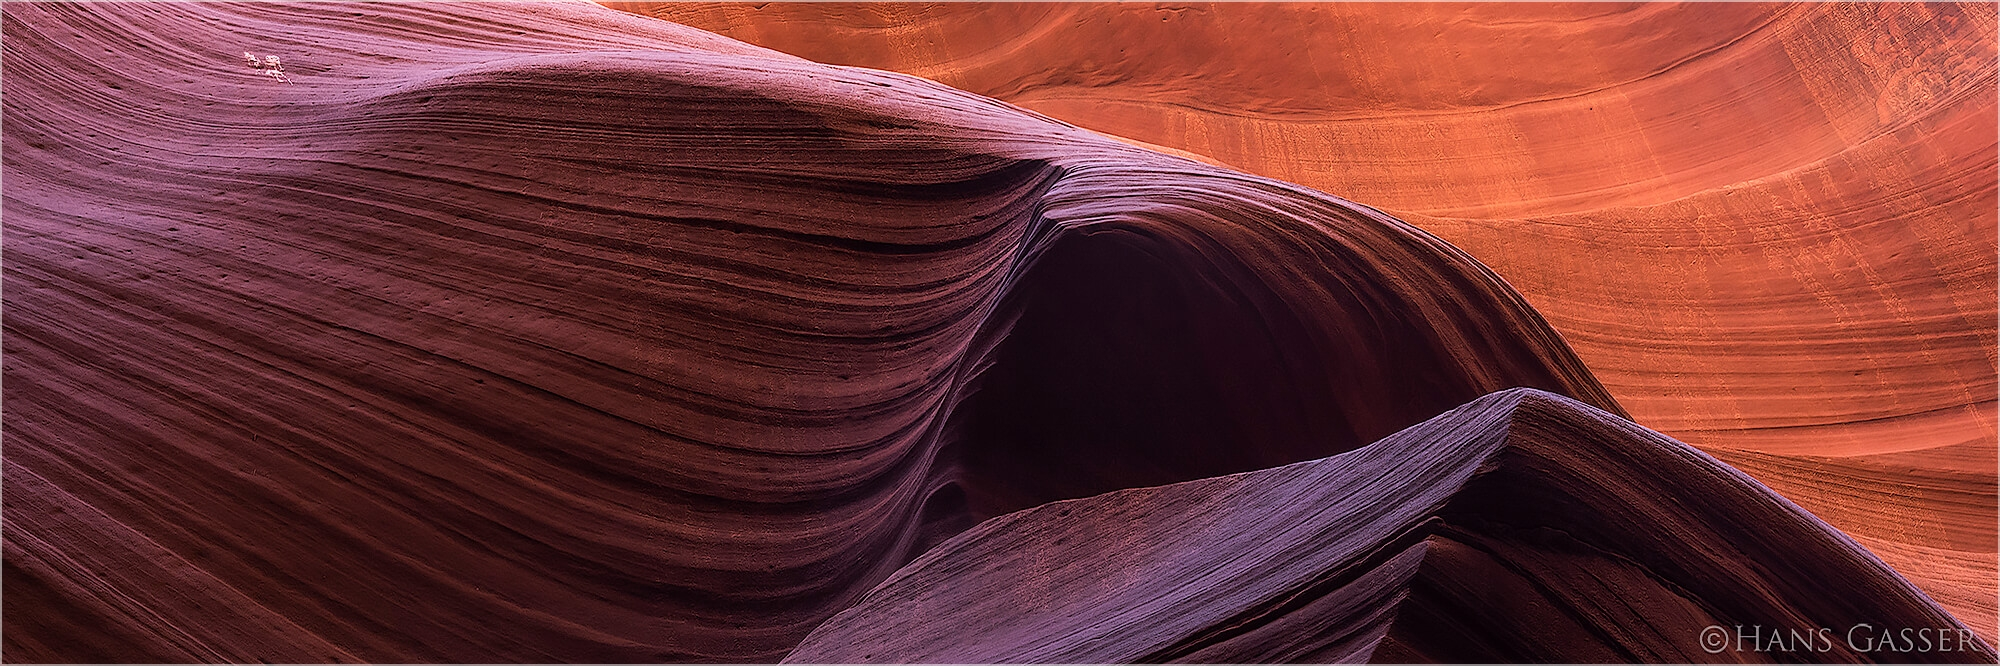 Panoramafoto Lower Antelope Canyon Arizona USA